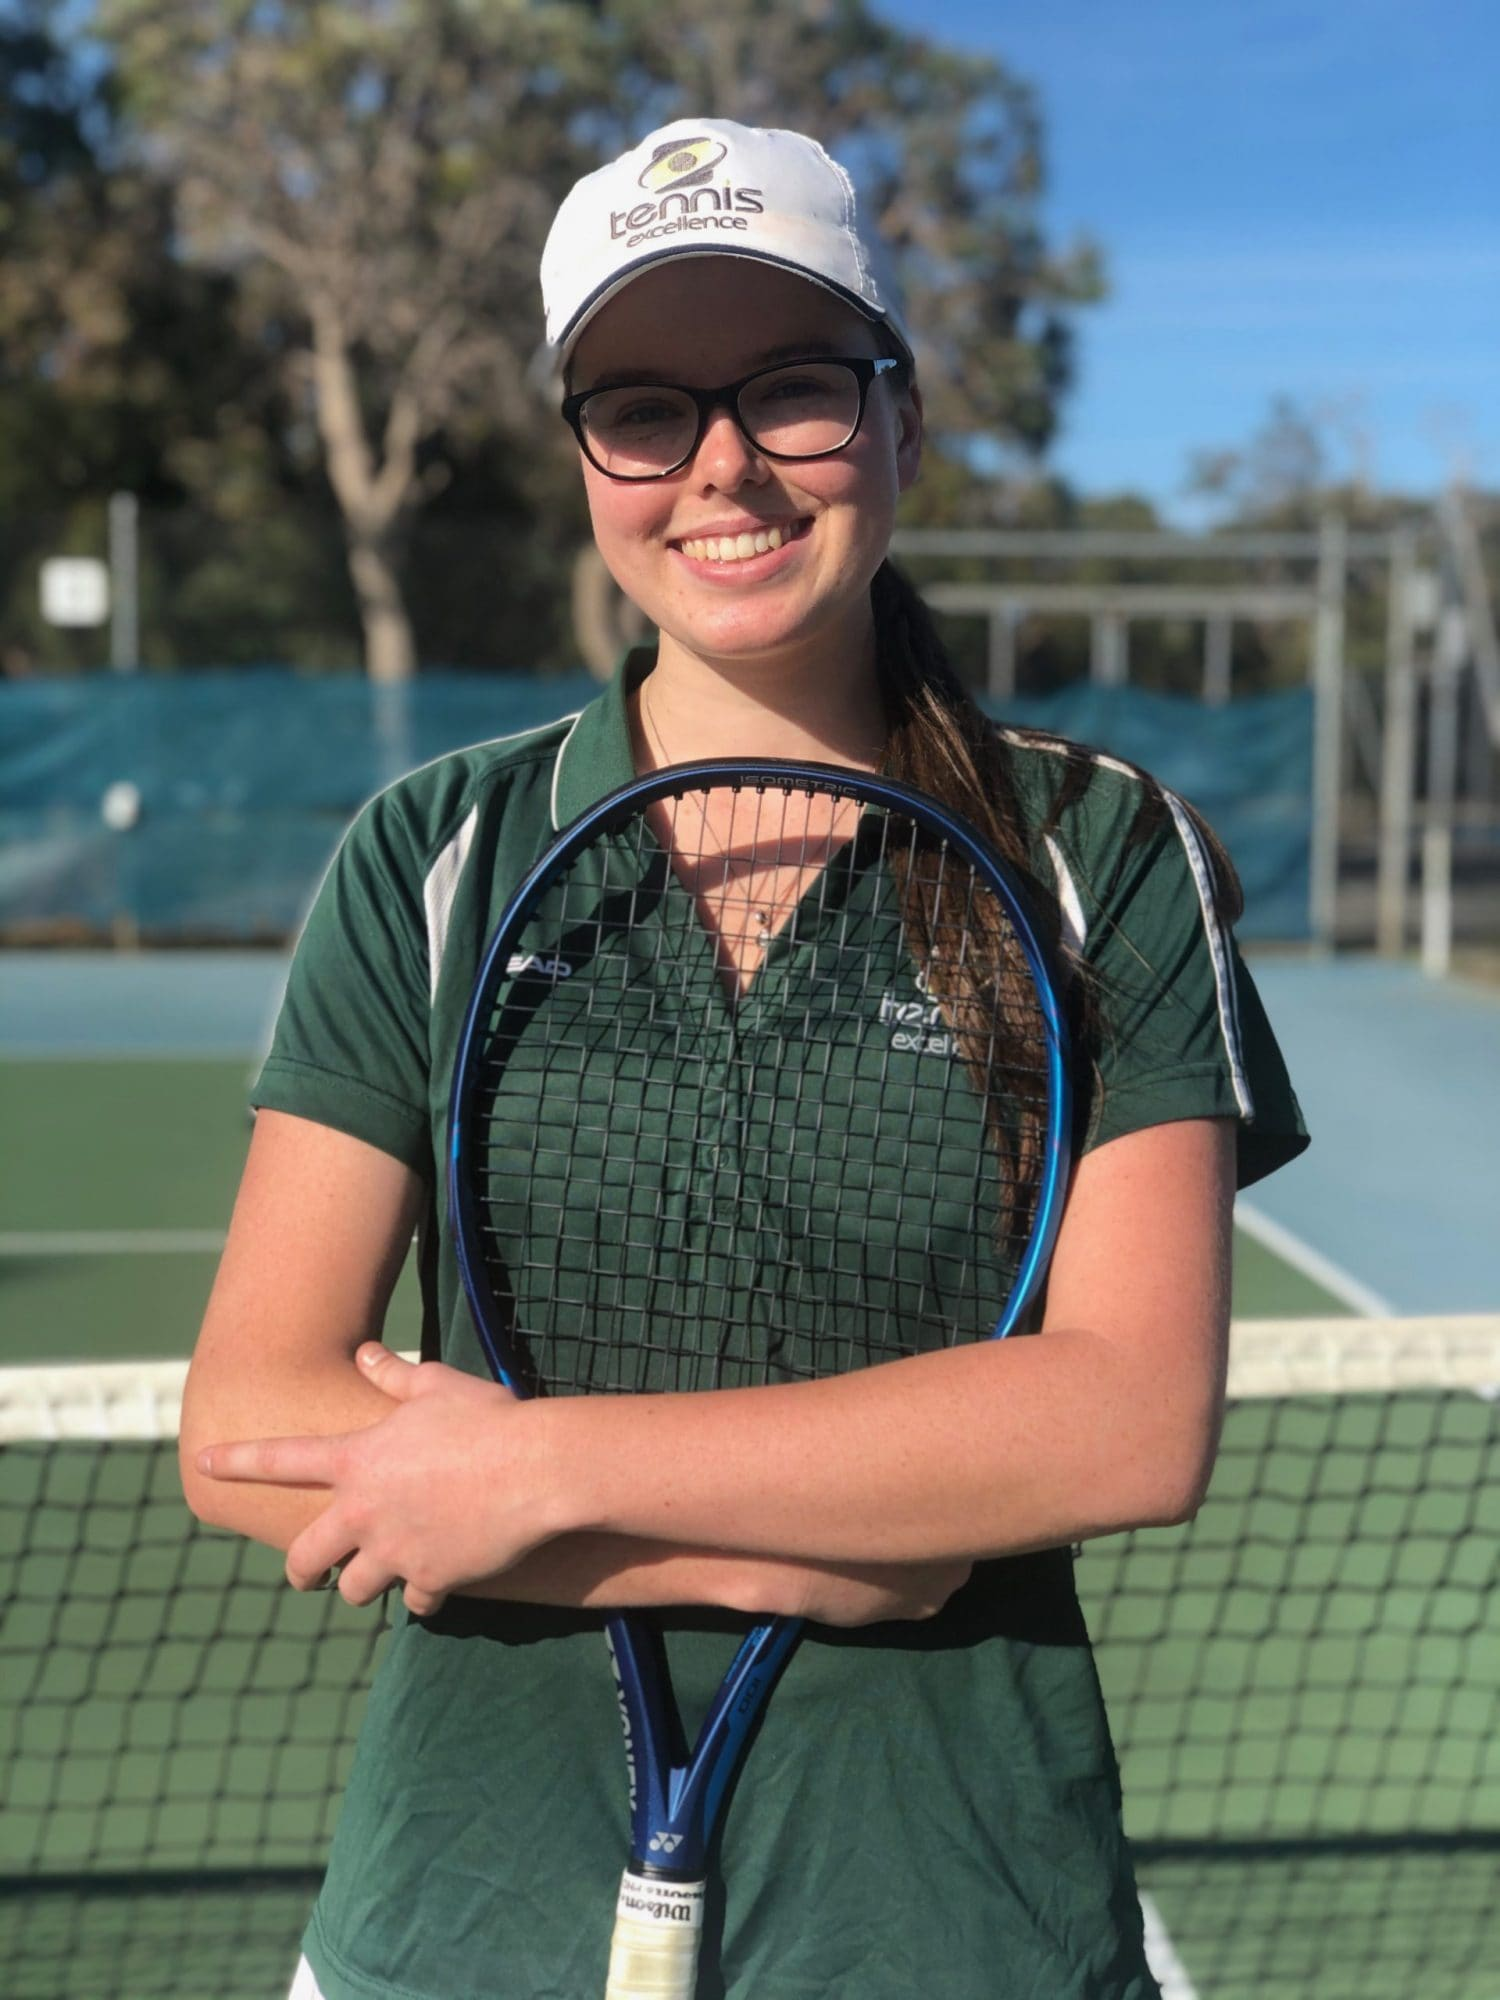 https://www.tennisexcellence.com.au/wp-content/uploads/2020/05/Coach_Lauren-Watts-scaled-e1589777049917.jpeg